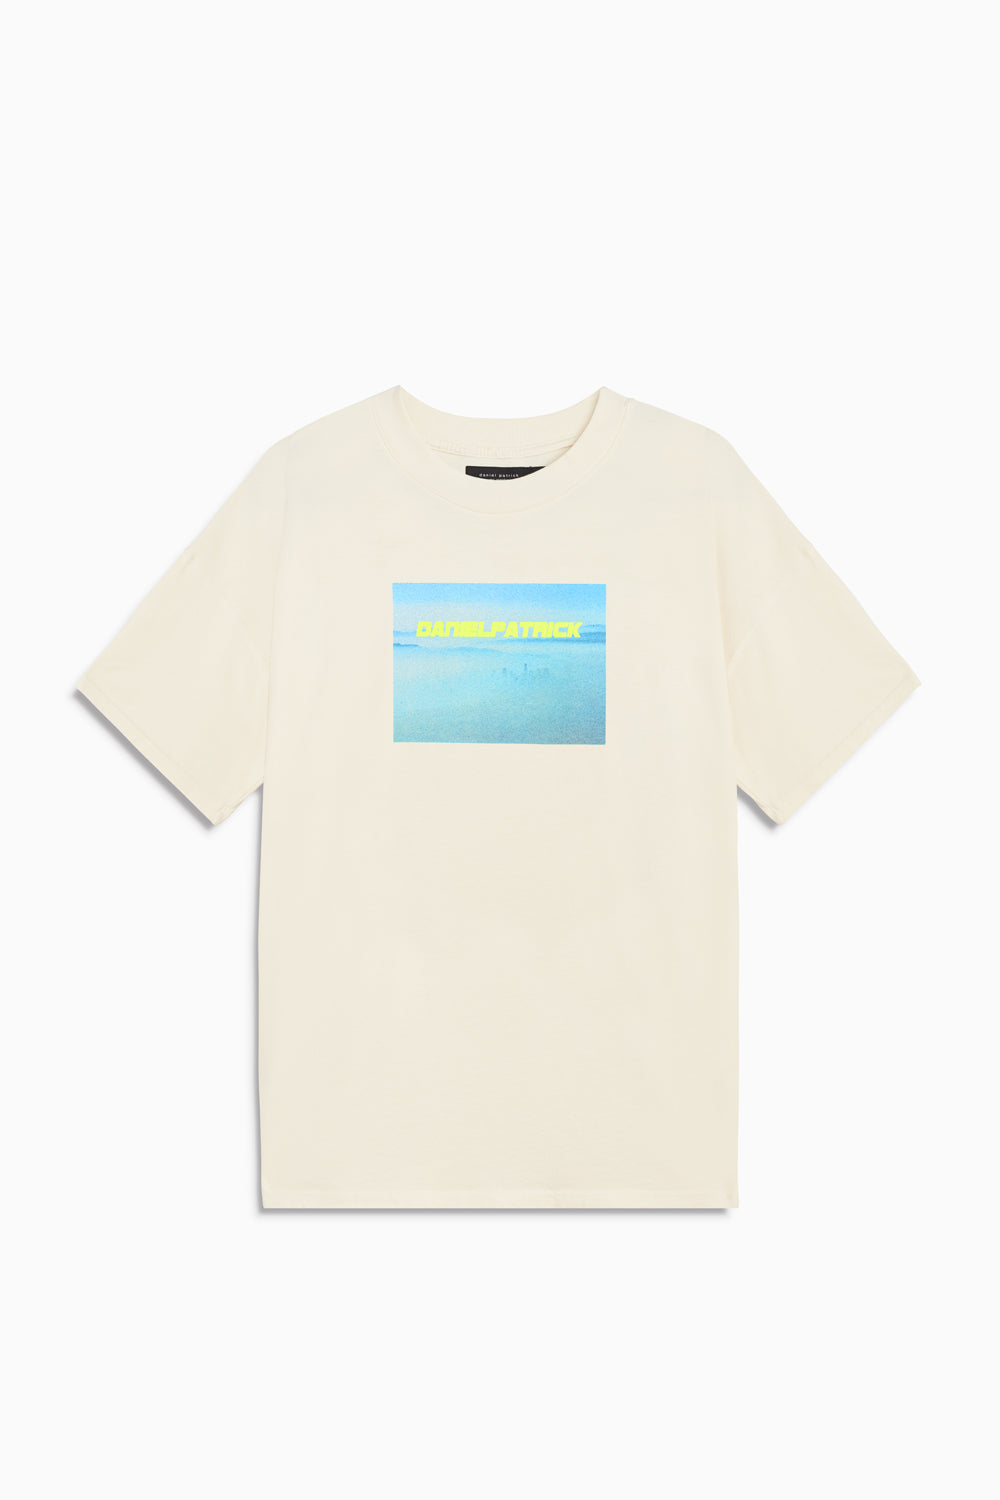 smog angeles tee in natural by daniel patrick